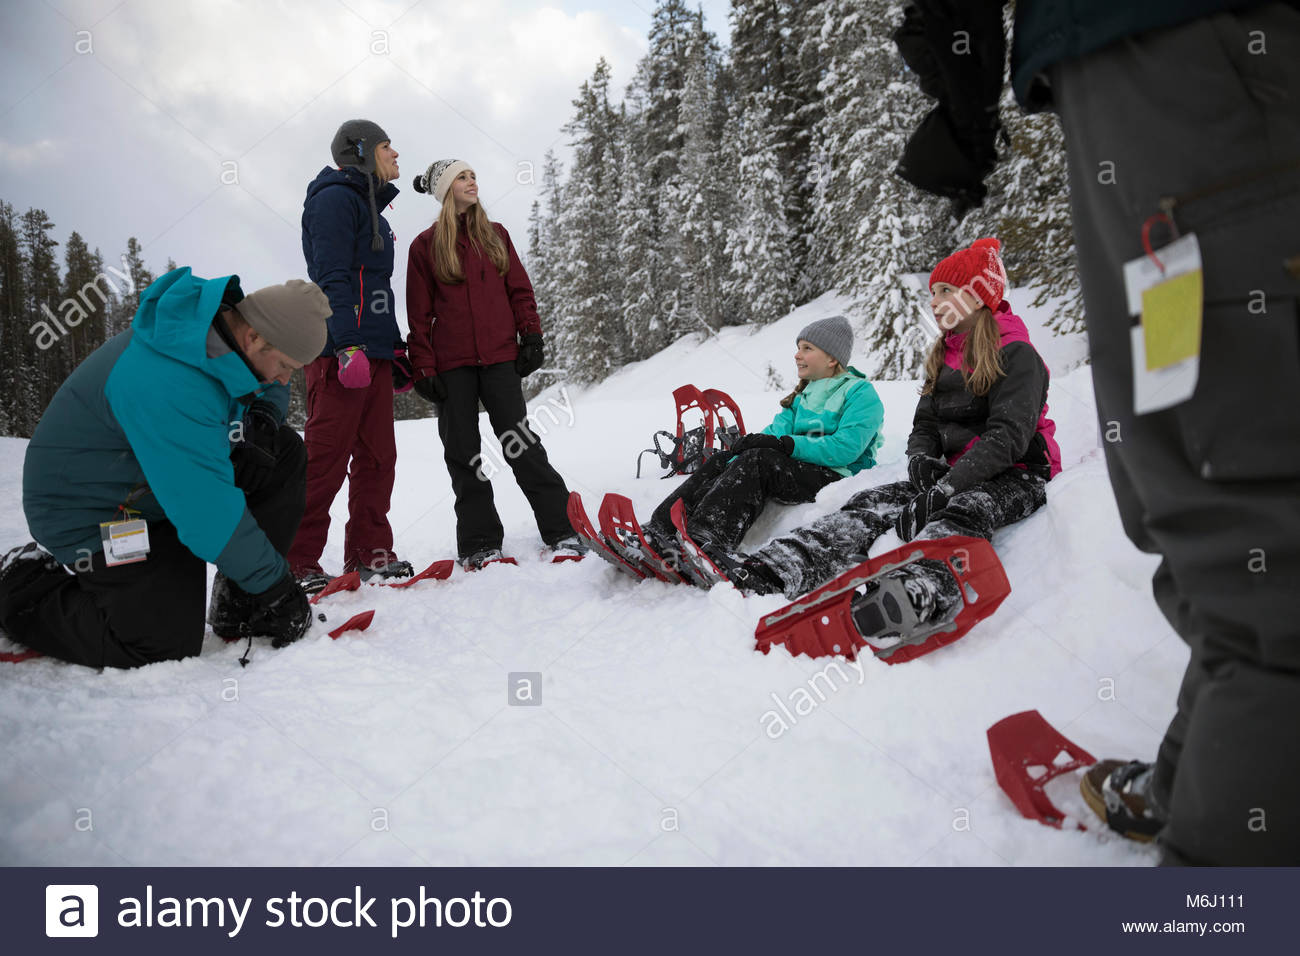 Family preparing for snowshoeing, putting on snowshoes in snow - Stock Image